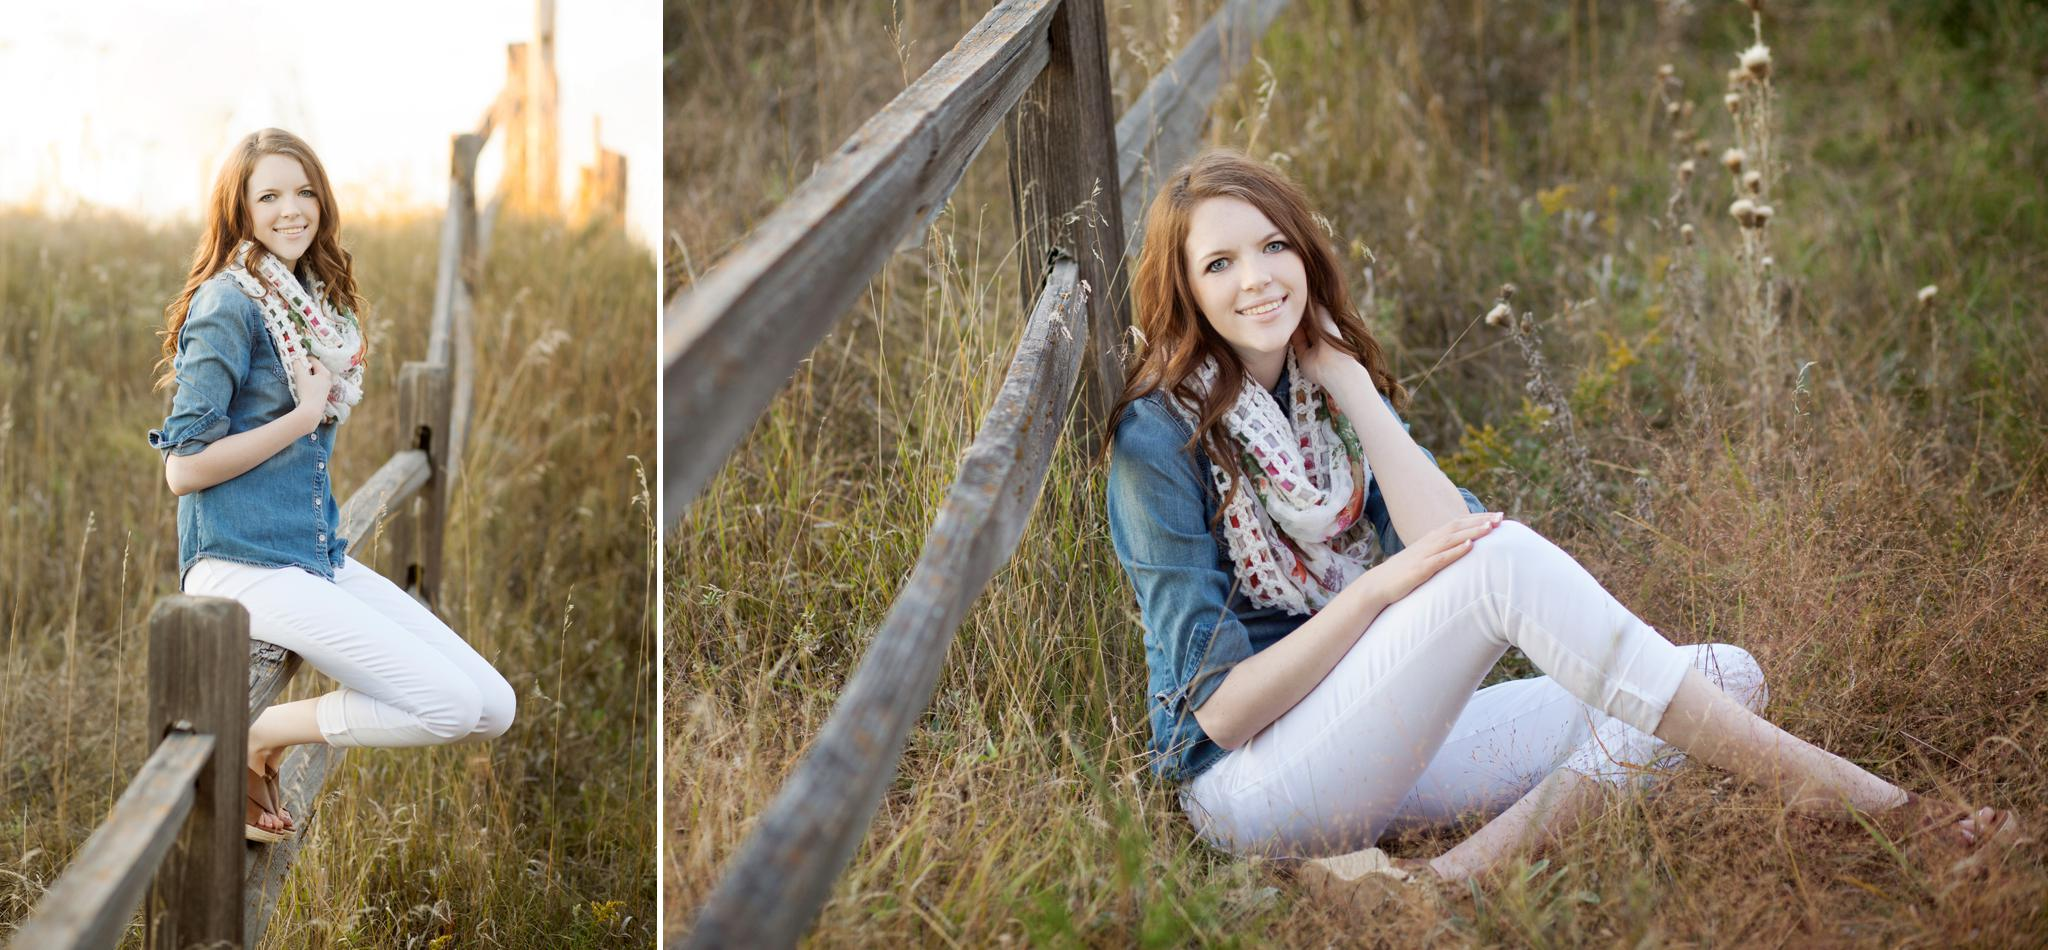 red headed senior girl in a denim top and white jeans sitting next to and on an old fence in the country